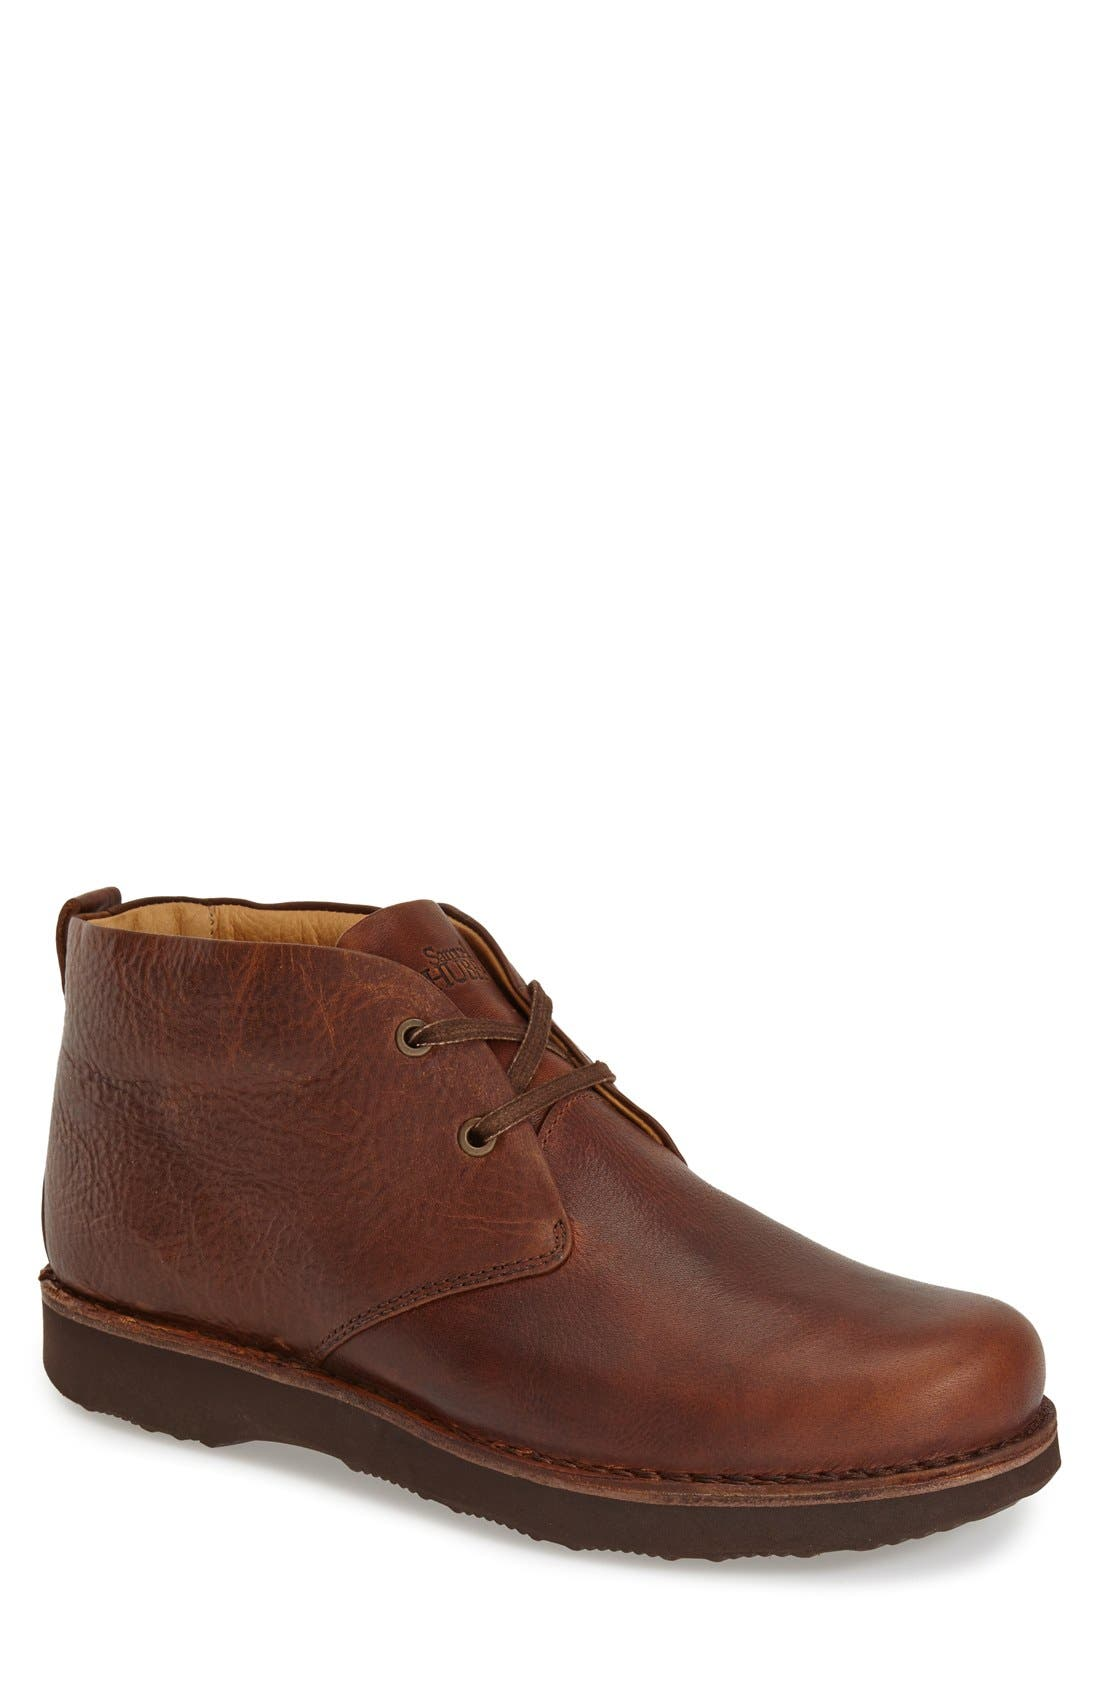 SAMUEL HUBBARD 'Boot-Up' Chukka Boot